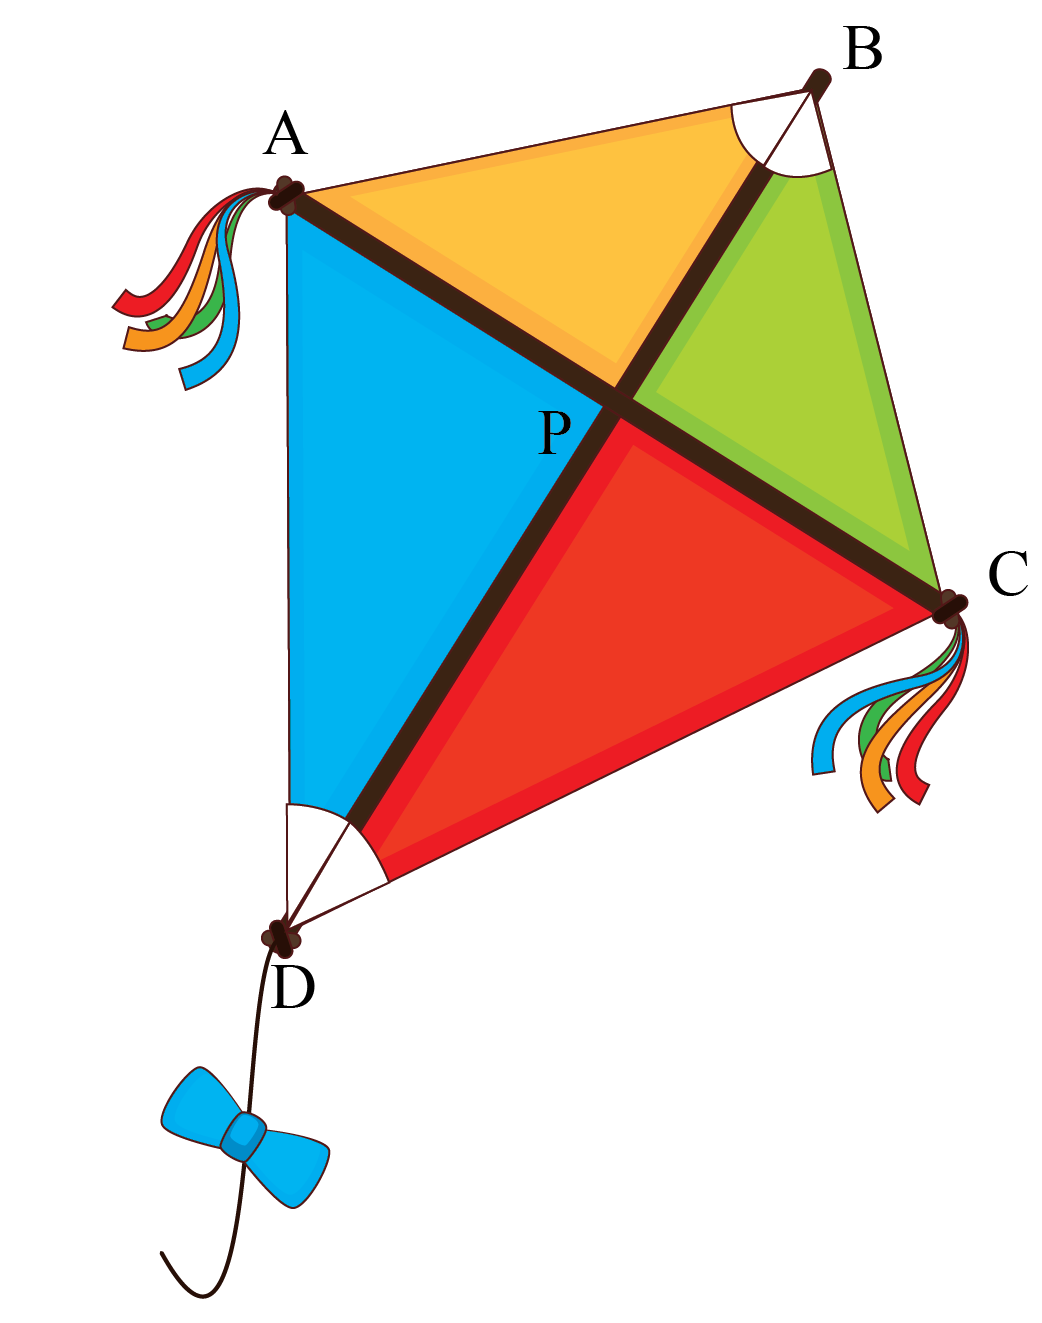 The kite rises highest against the wind, not with it.